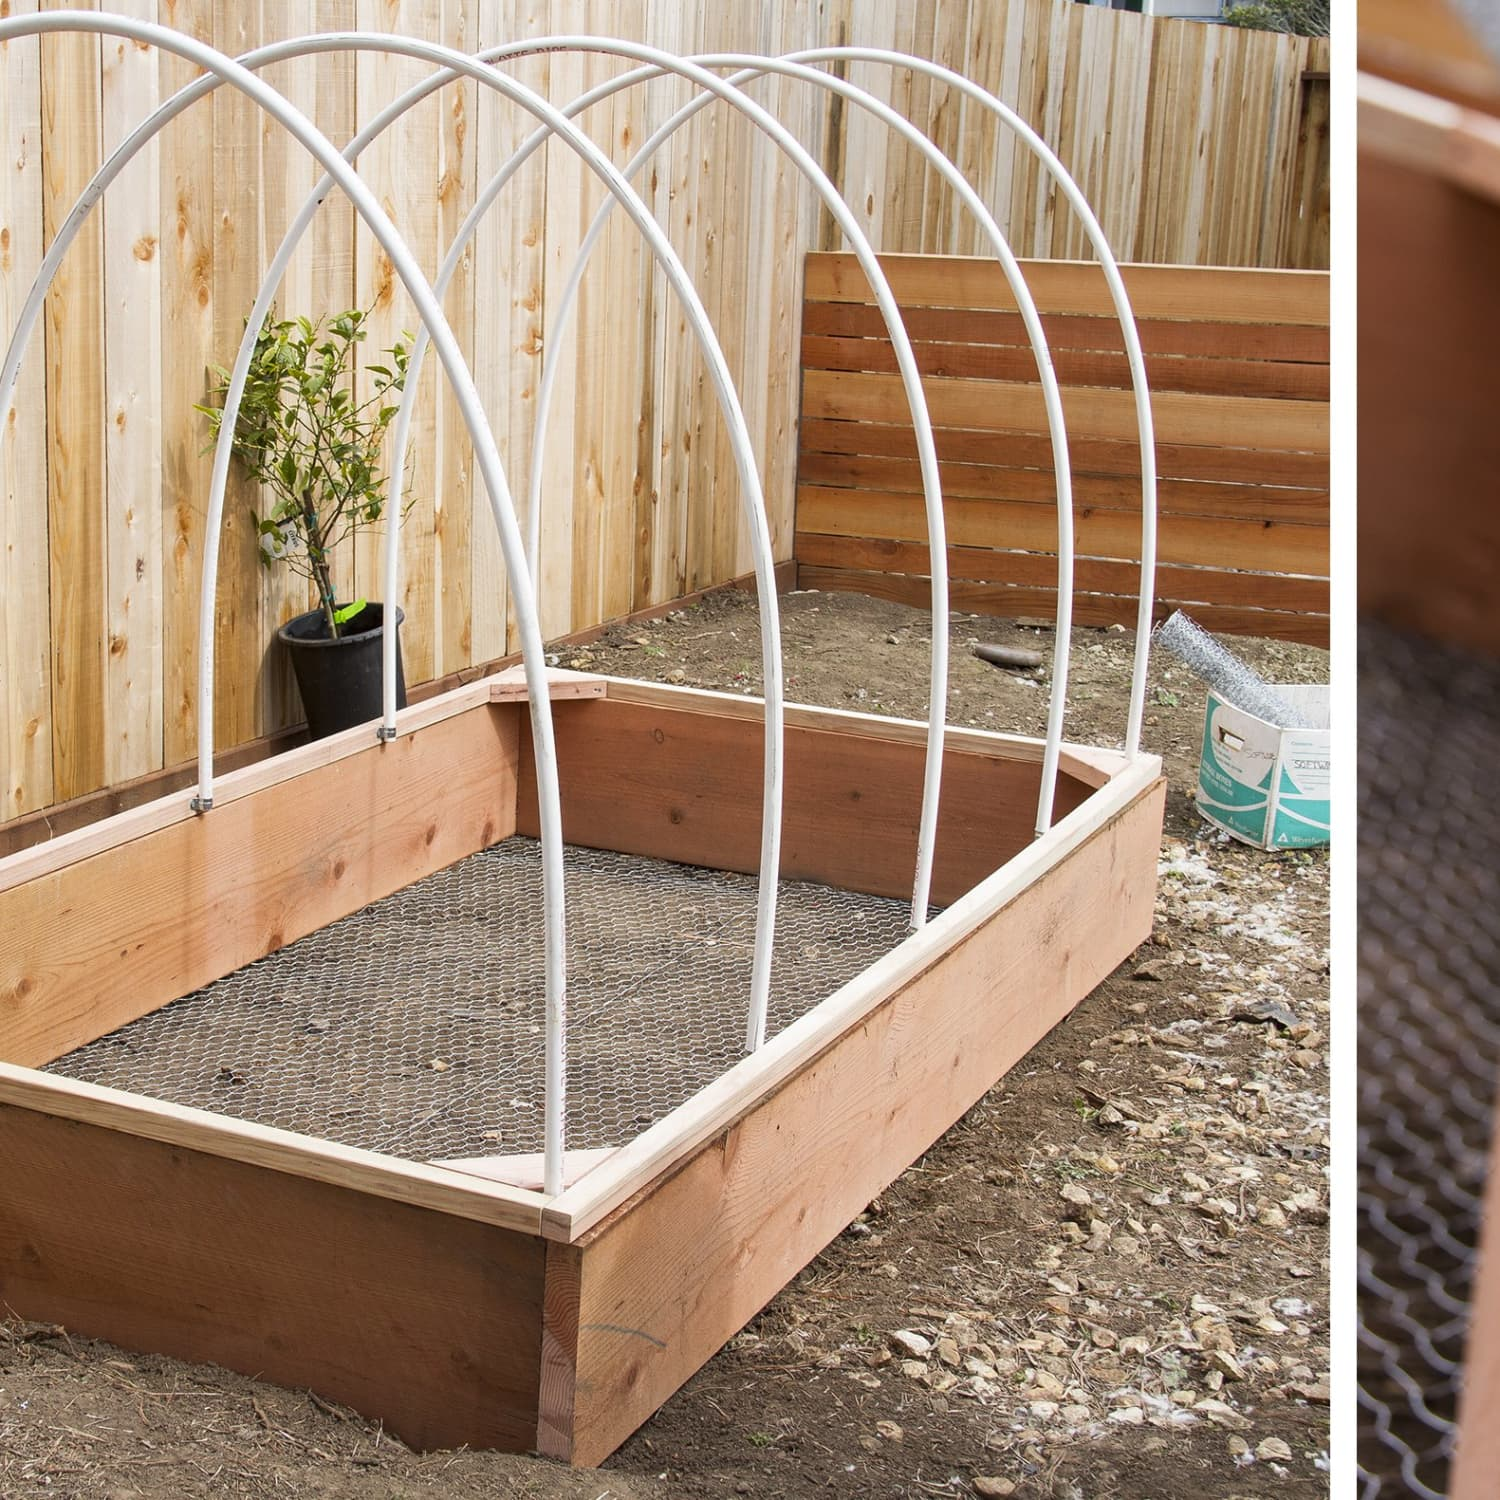 DIY Covered Greenhouse Garden: A Removable Cover Solution to ... on french country house plans, earth covered hobbit home plans, energy efficient house plans, pvc house, allison ramsey architects house plans, wood frame house plans, unique modern contemporary house plans, victorian ranch house plans, cold weather dog house plans, old chicken house plans, poultry house plans, small timber frame house plans, pvc parts list, pvc projects, rooster house plans, cheap house plans, straw bale house plans, pvc gardening, pvc light box,